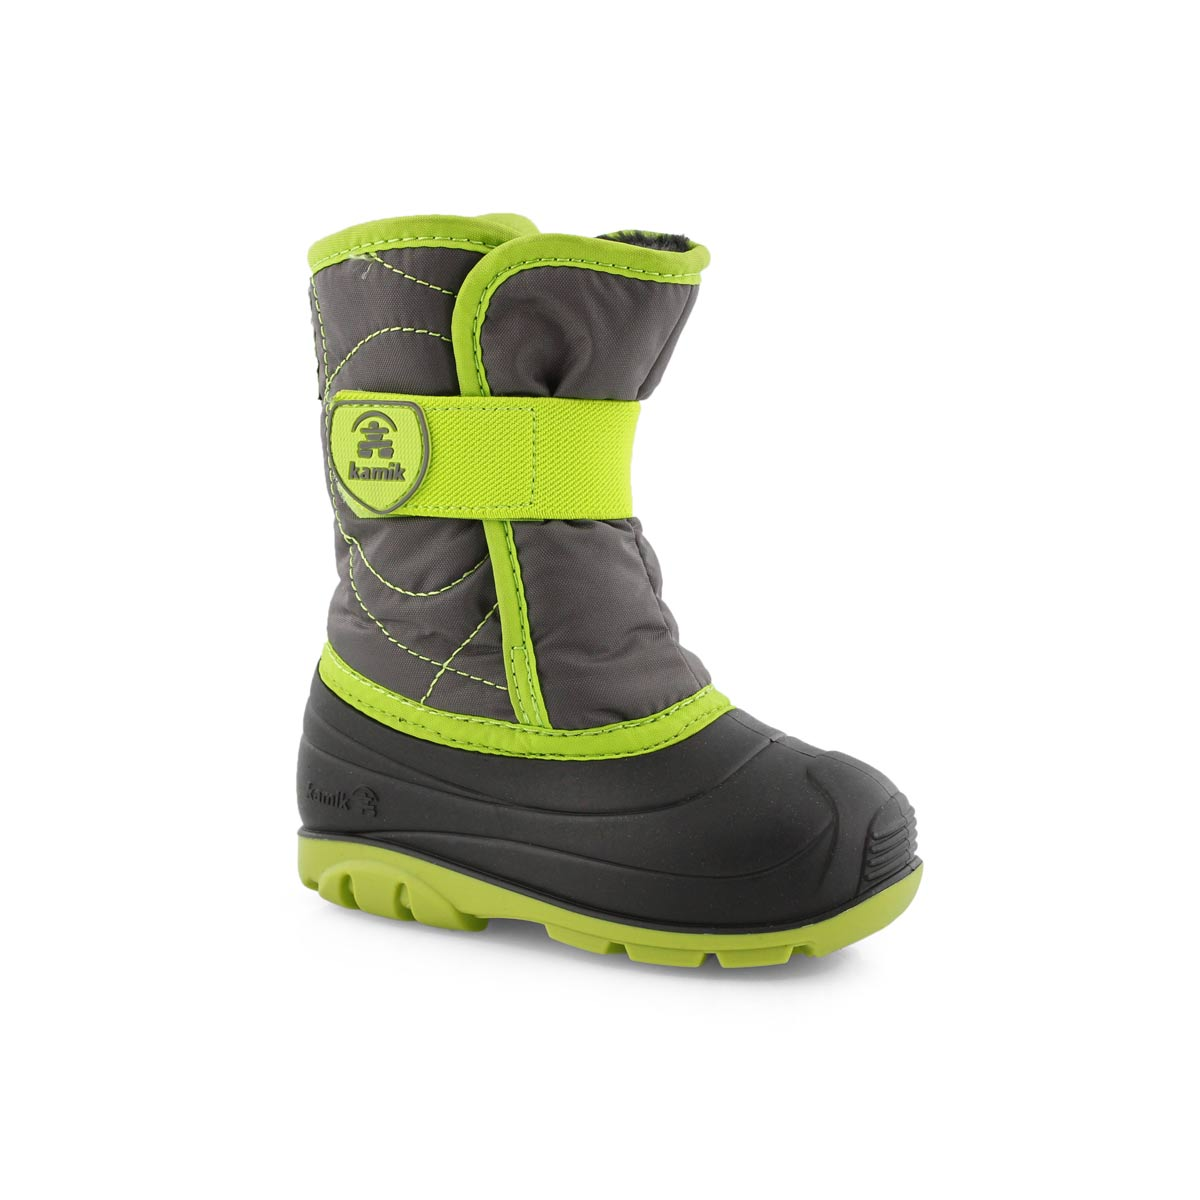 Infs Snowbug3 cha/lme wtpf winter boot